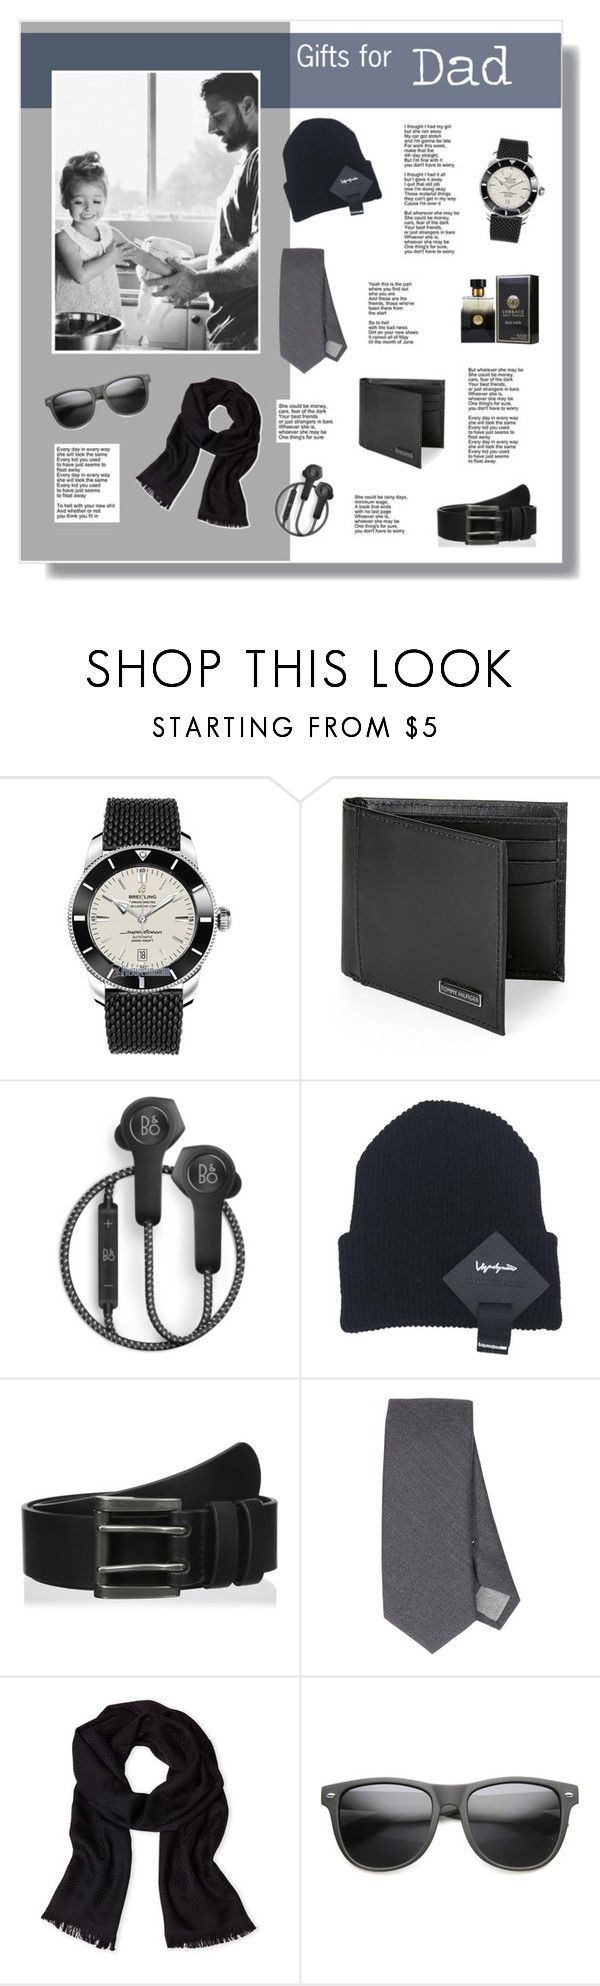 // 1337. Gifts for Dad. by lilymcenvy on Polyvore featuring Breitling, ZeroUV, Tommy Hilfiger, Versace, Eleventy, Levi's, B&O Play, PENHALIGON'S, men's fashion and menswear